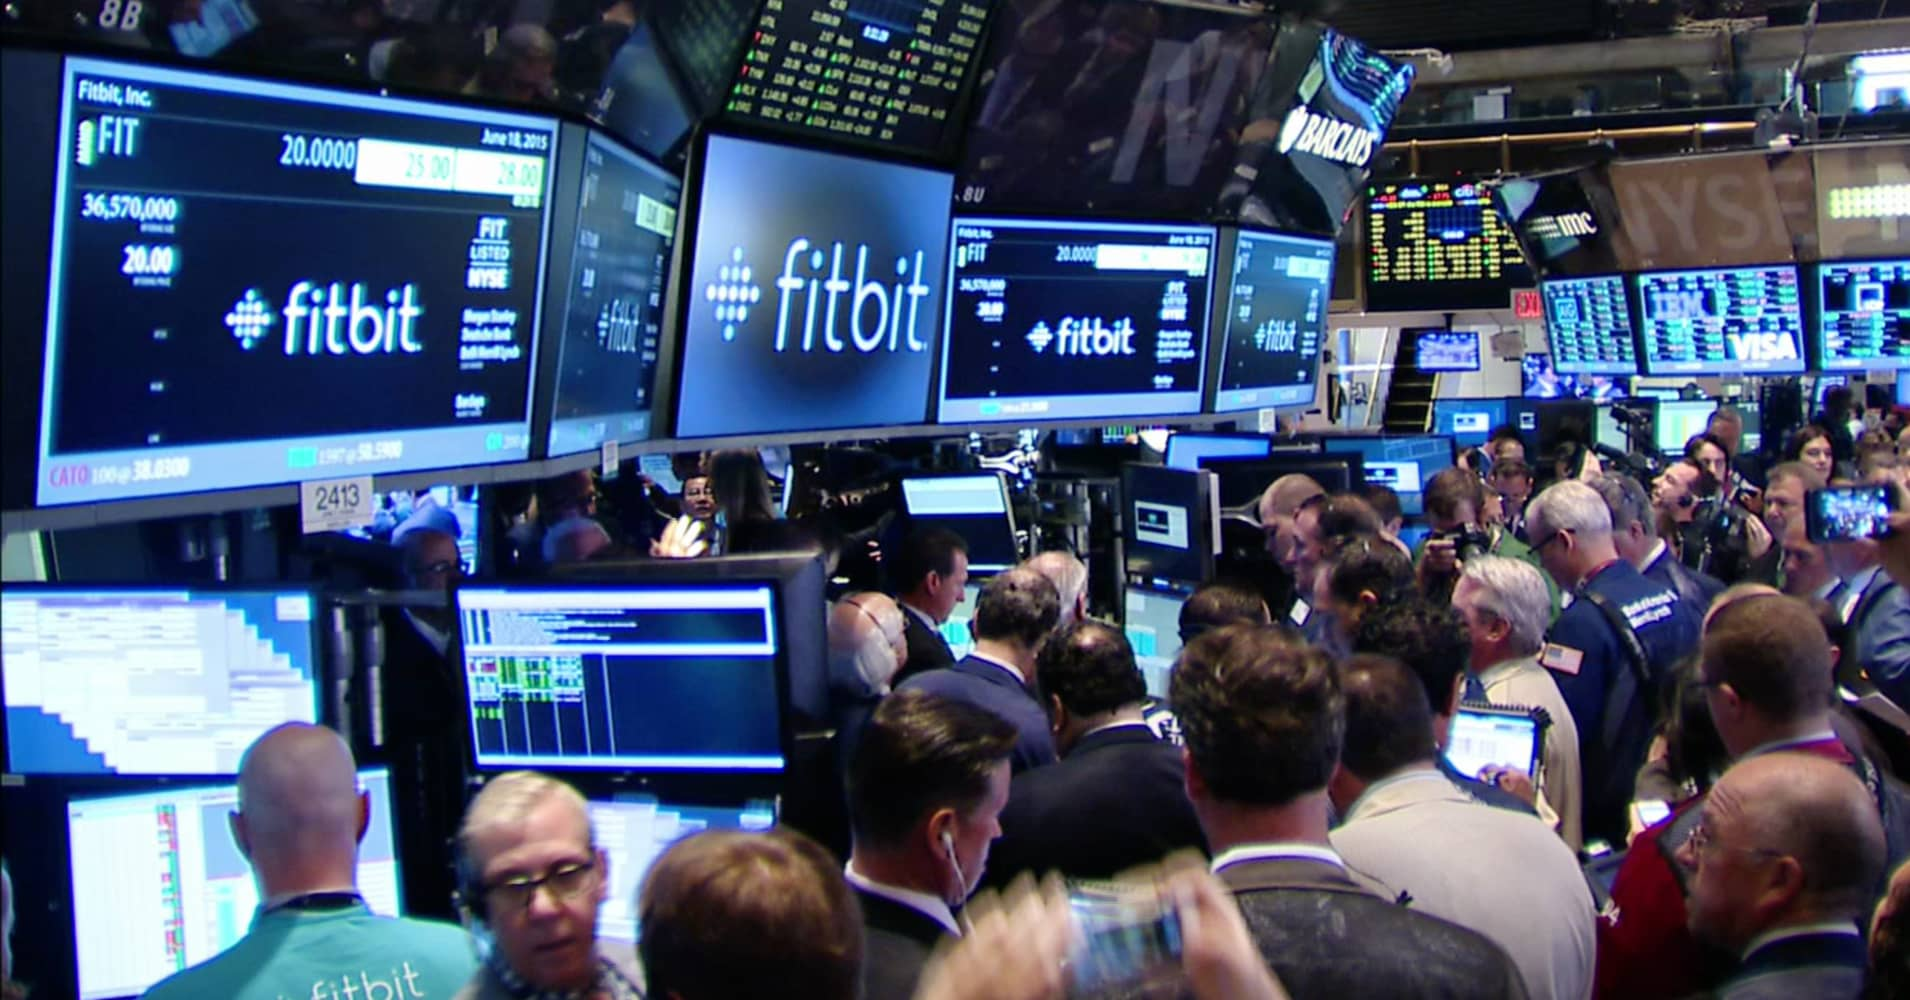 Fitbit Stock Quote Fitbit Soars 20% On Second Trading Day